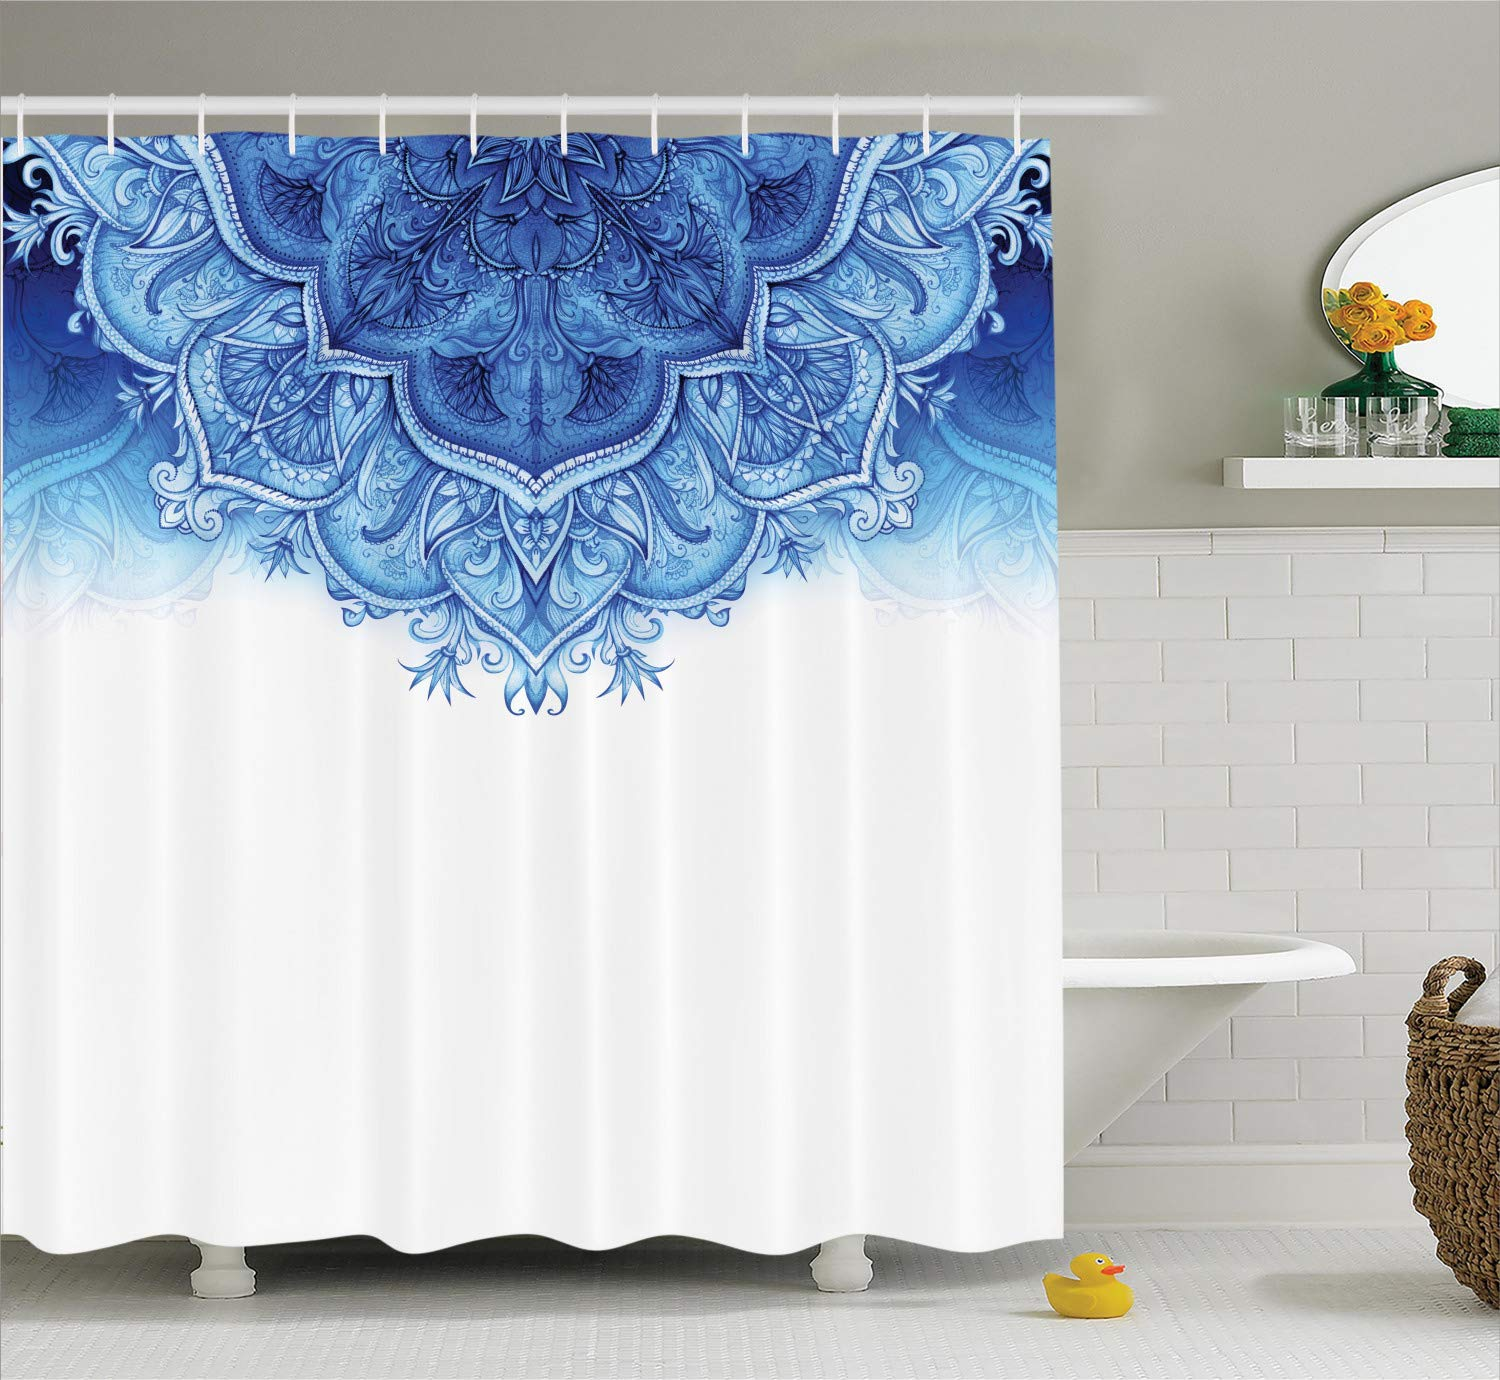 Ambesonne Moroccan Shower Curtain, Floral Artwork Vintage Style with Eastern Architectural Elements Oriental Pattern, Fabric Bathroom Decor Set with Hooks, 75 Inches Long, Blue White